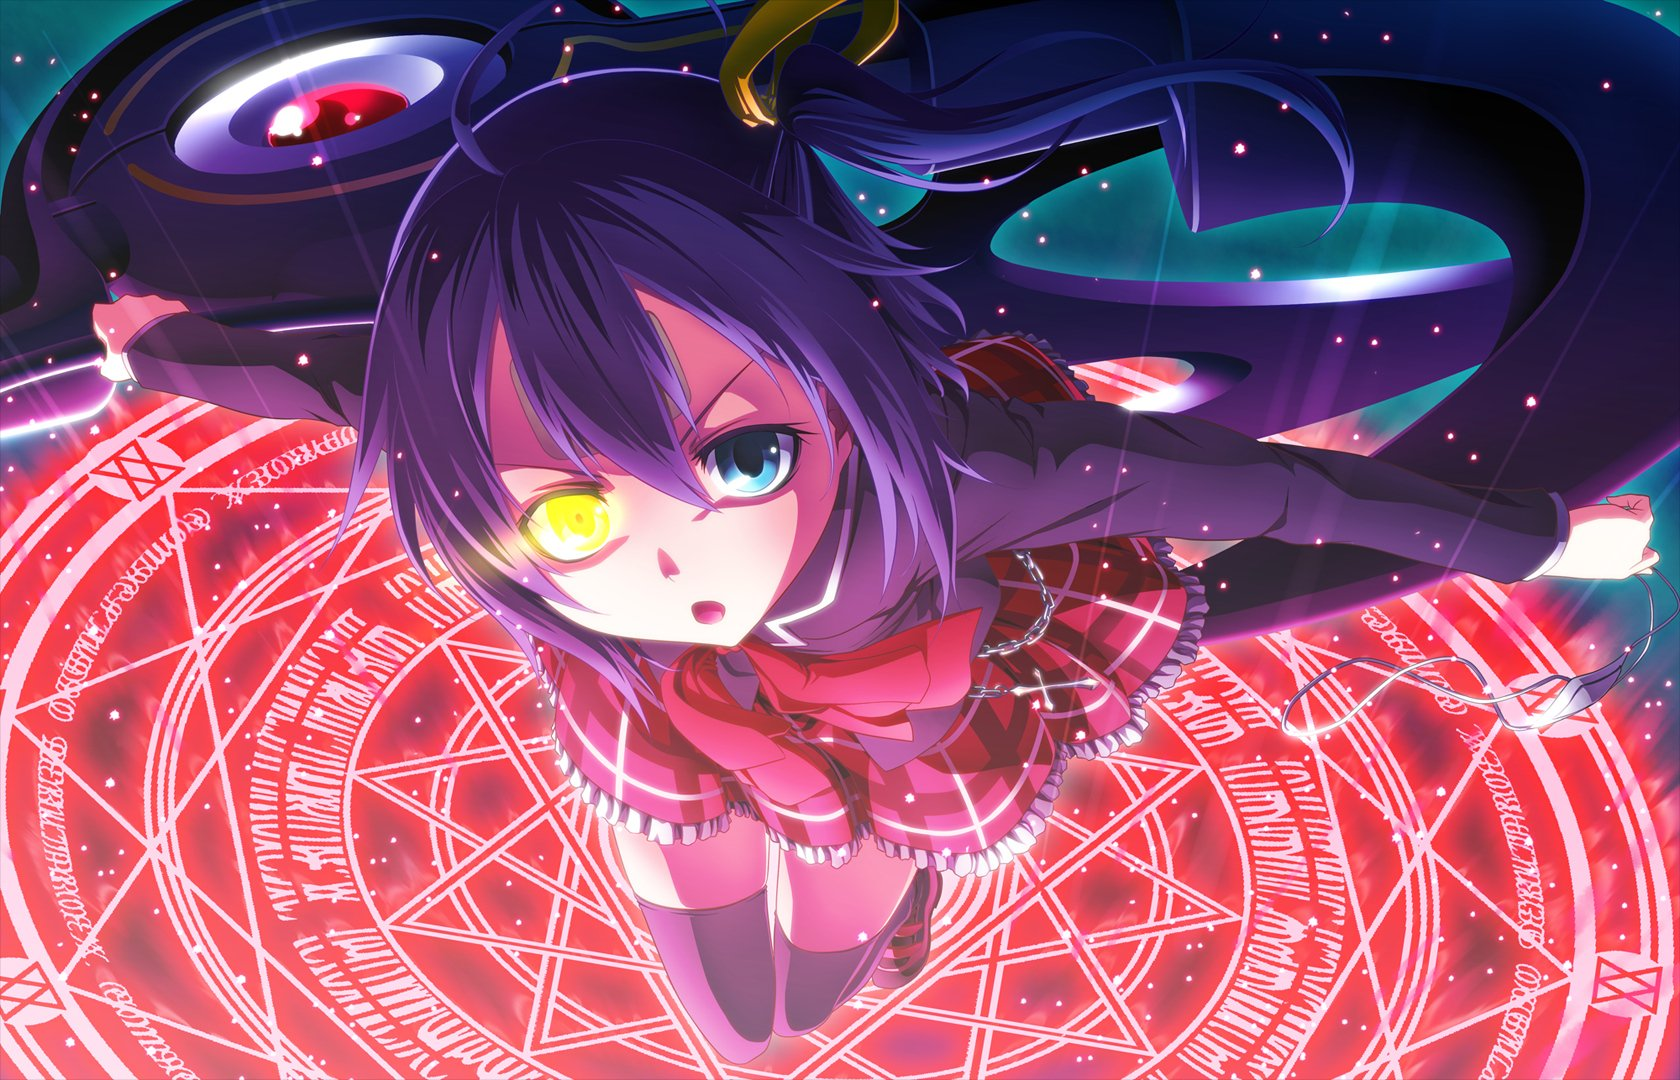 159 Rikka Takanashi Hd Wallpapers Background Images Wallpaper Abyss